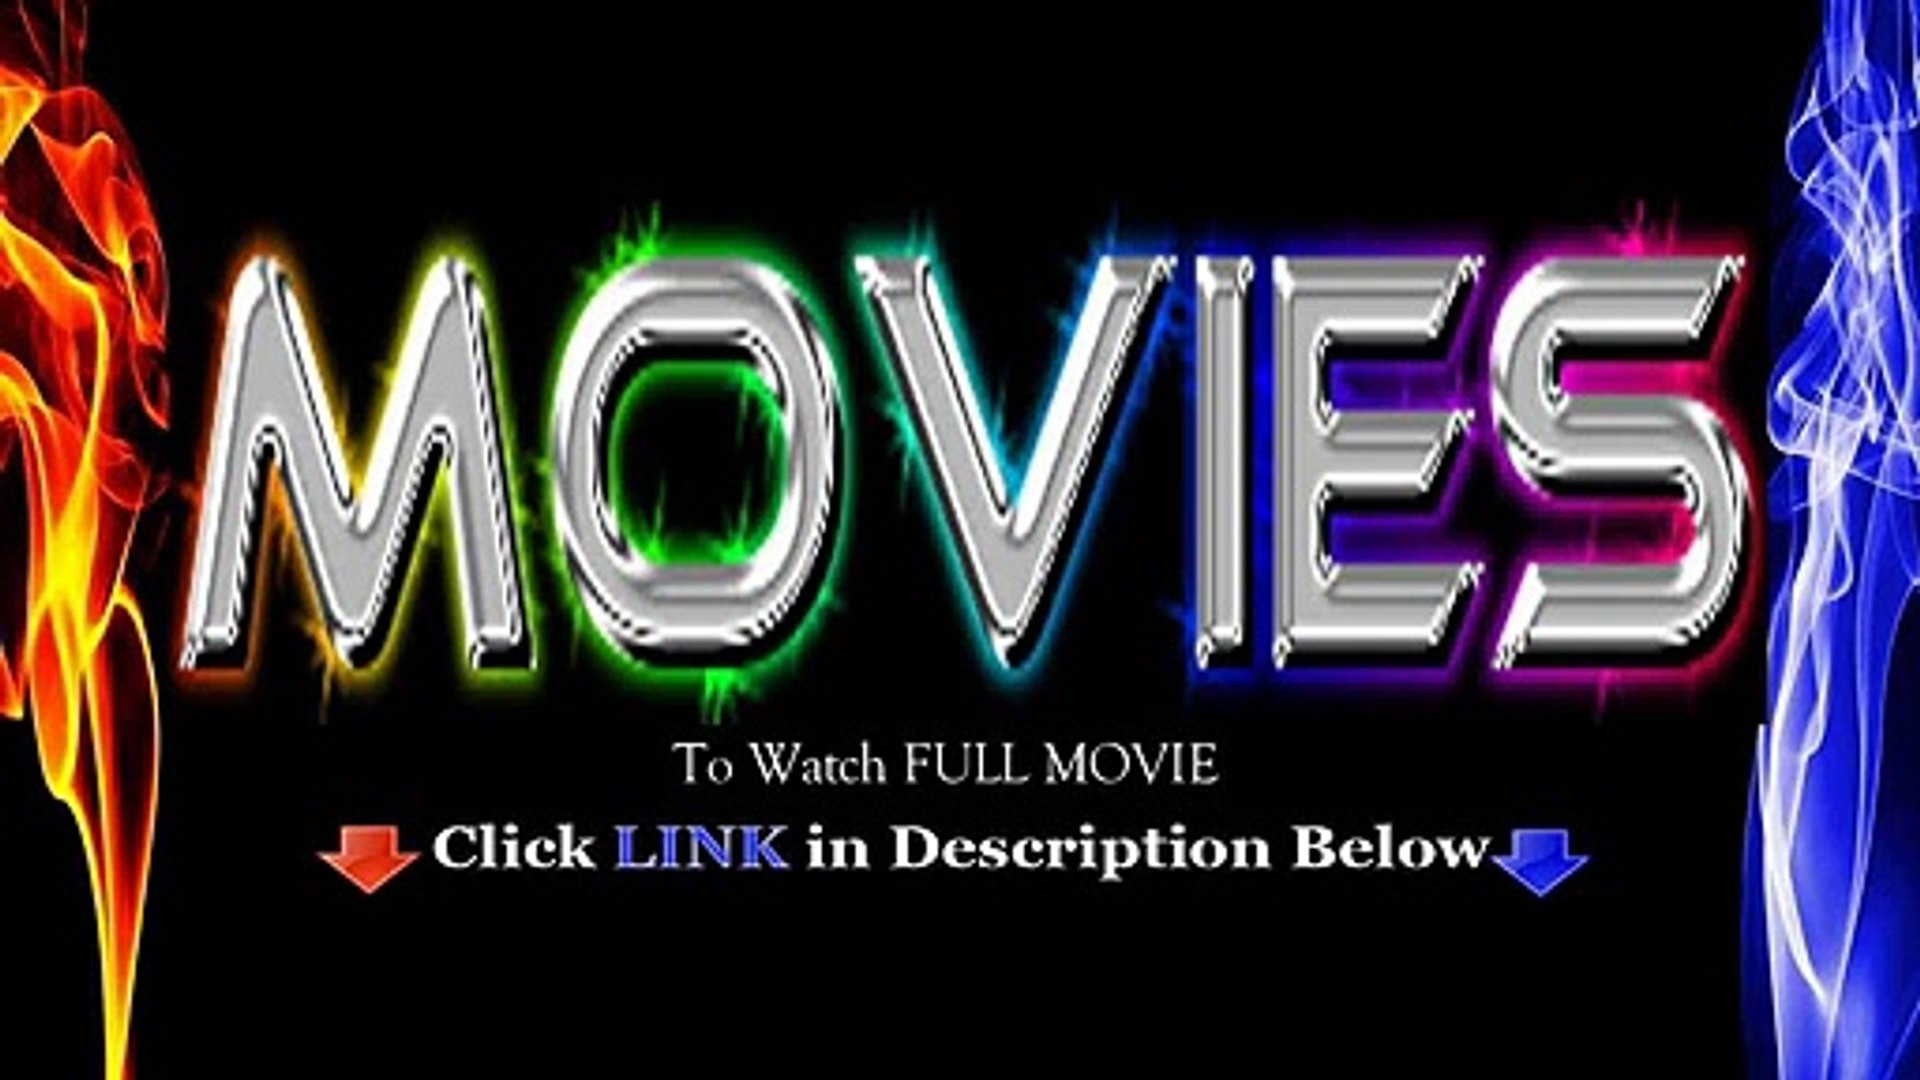 Lost Highway (1997) Full Movie New - Daily Motion